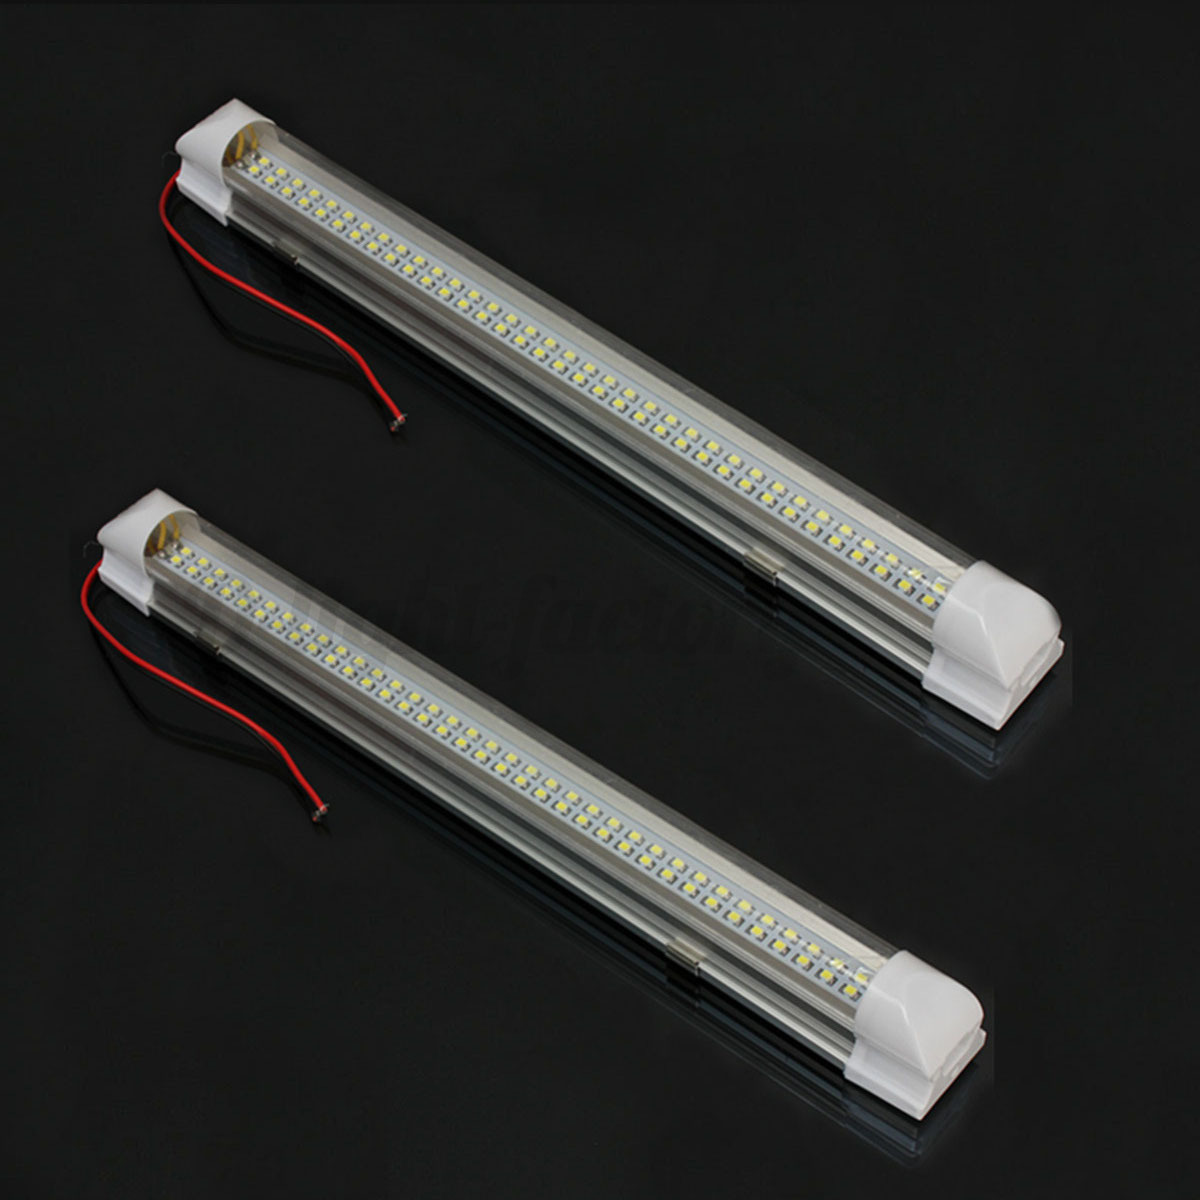 2x 12 volt 72 leds interior light strip bar car van bus caravan on off switch ebay. Black Bedroom Furniture Sets. Home Design Ideas